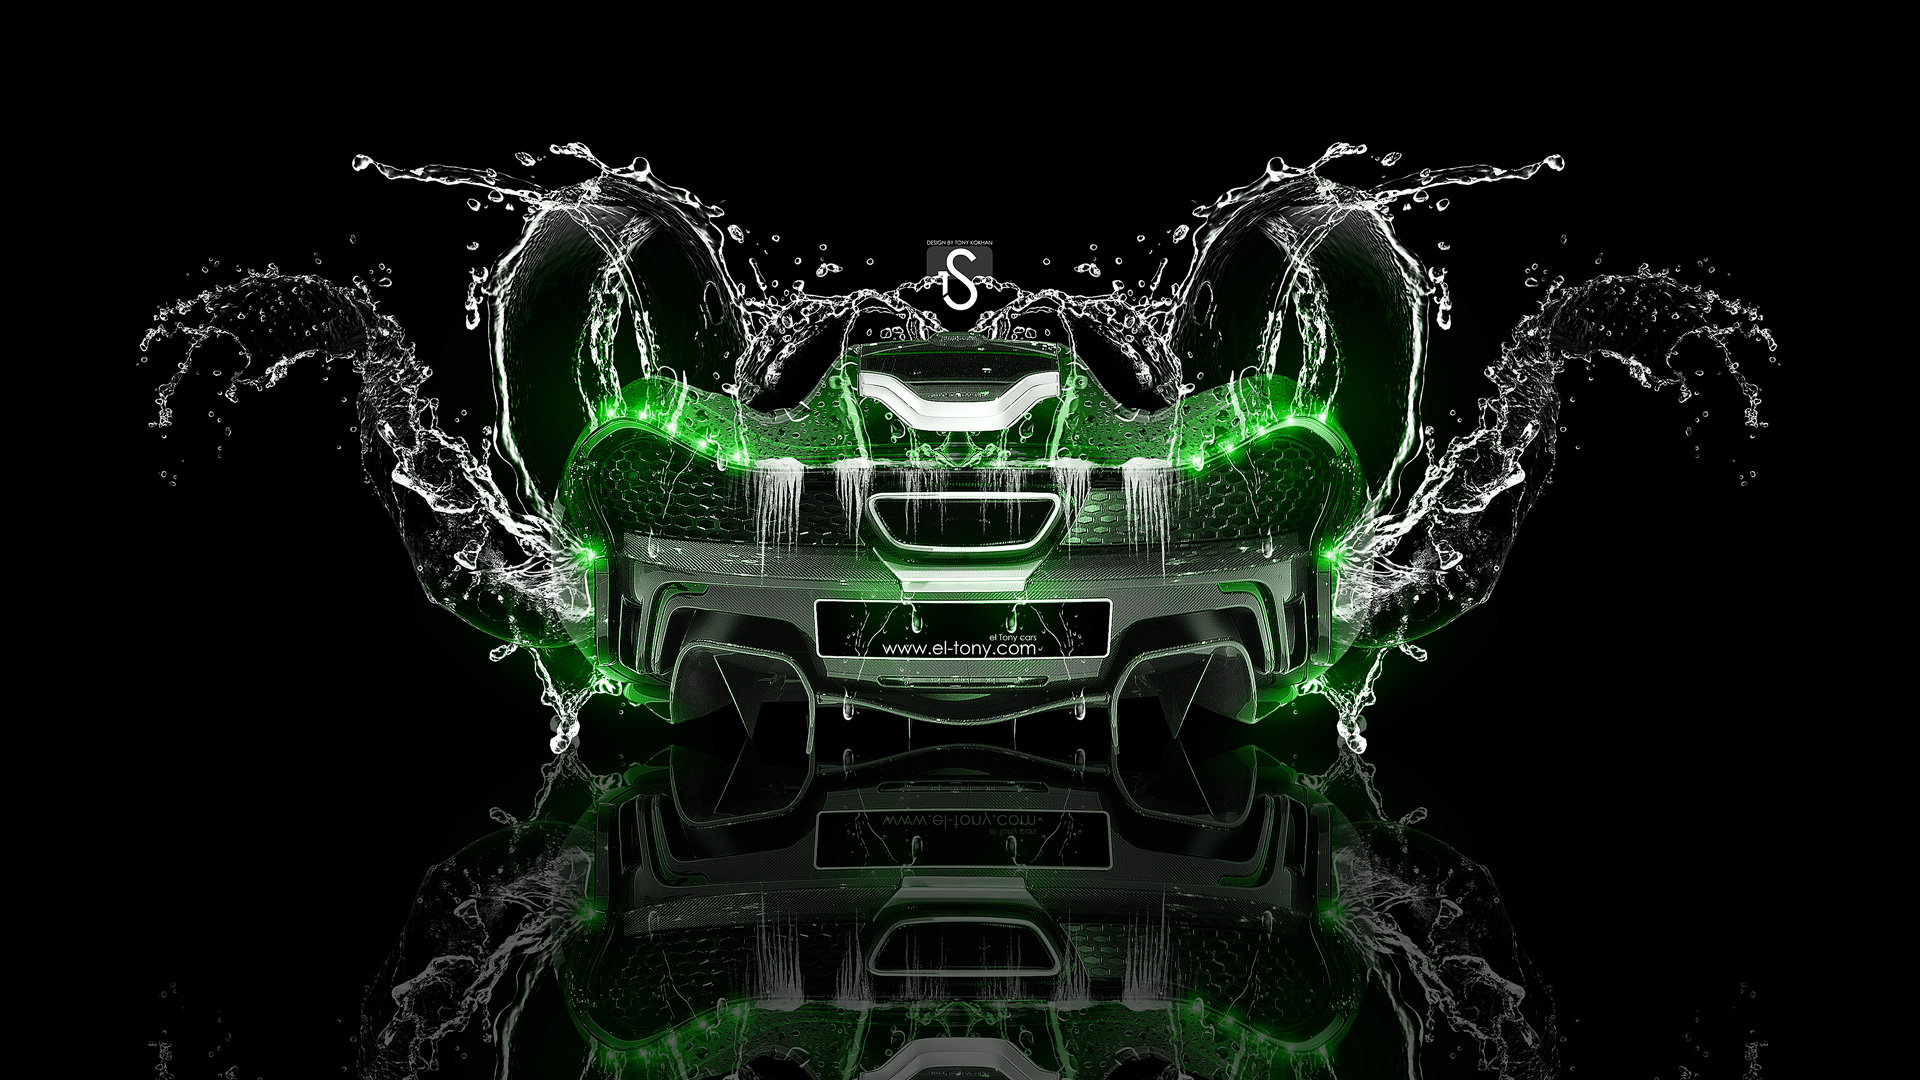 Mclaren P Back Water Car Green Neon Hd Wallpapers Design By Tony Kokhan   El Tony on mclaren p1 blue fire